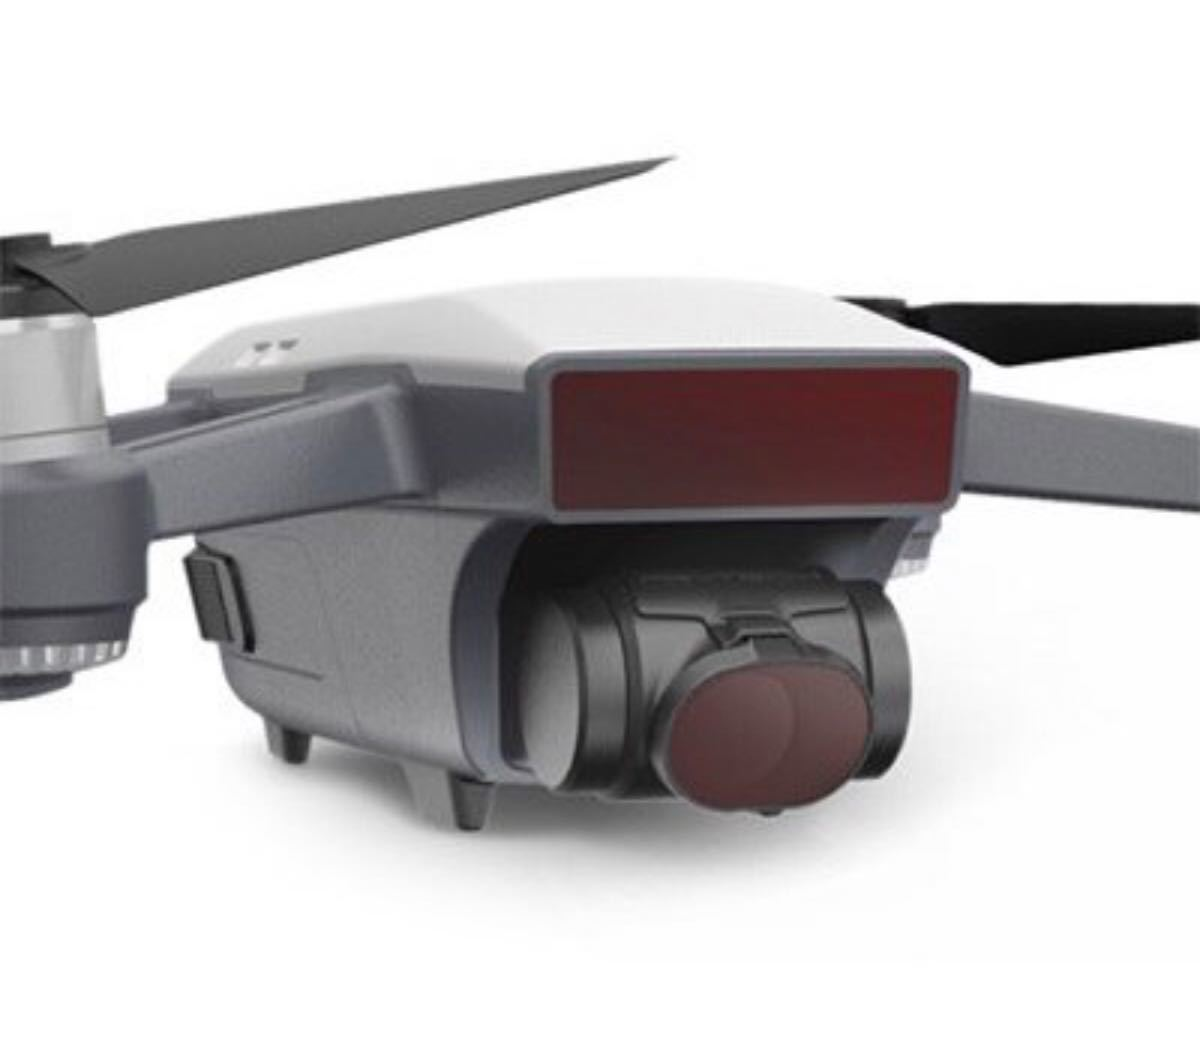 DJI SPARK 用 レンズフィルター ND4/ND8/ND16/ND32 (4種類セット) 新品未開封 特価販売です。